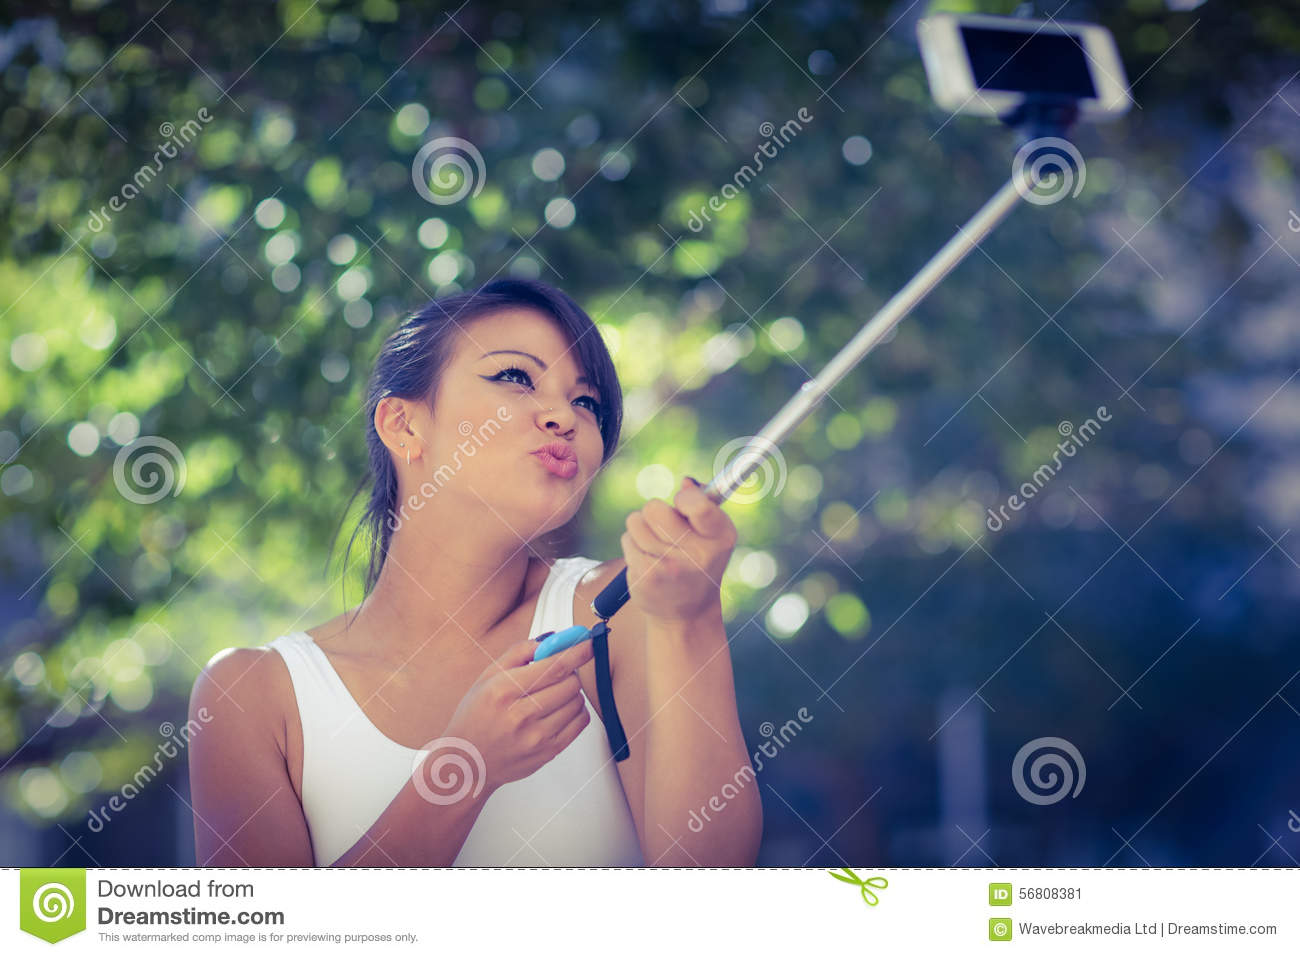 Smiling athletic woman taking selfies with selfiestick